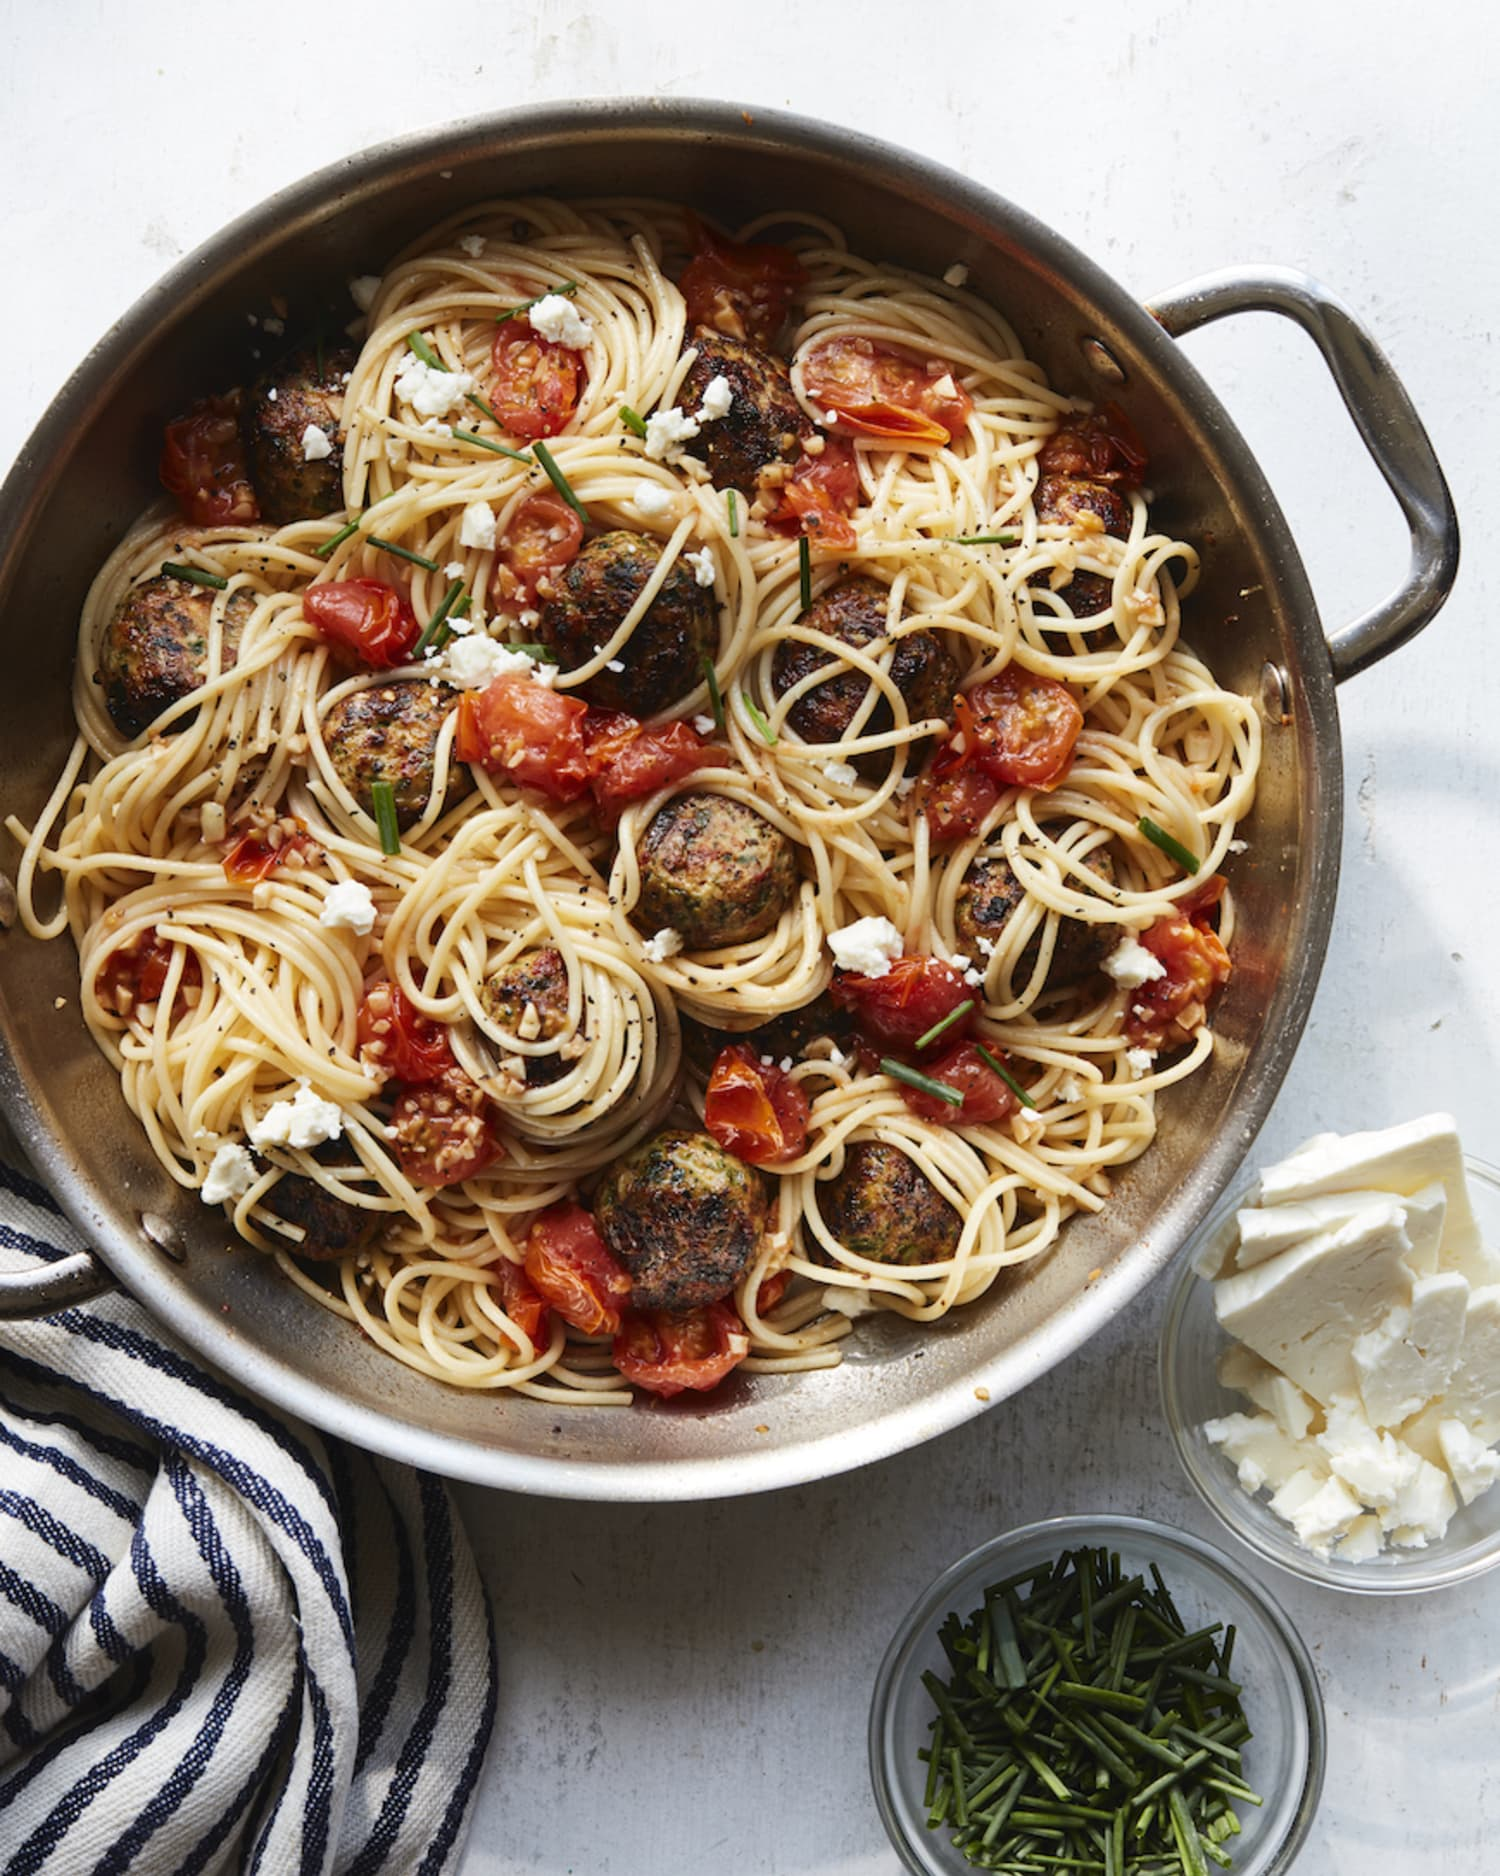 You Need to Try This Fresh, Mediterranean Take on Spaghetti and Meatballs